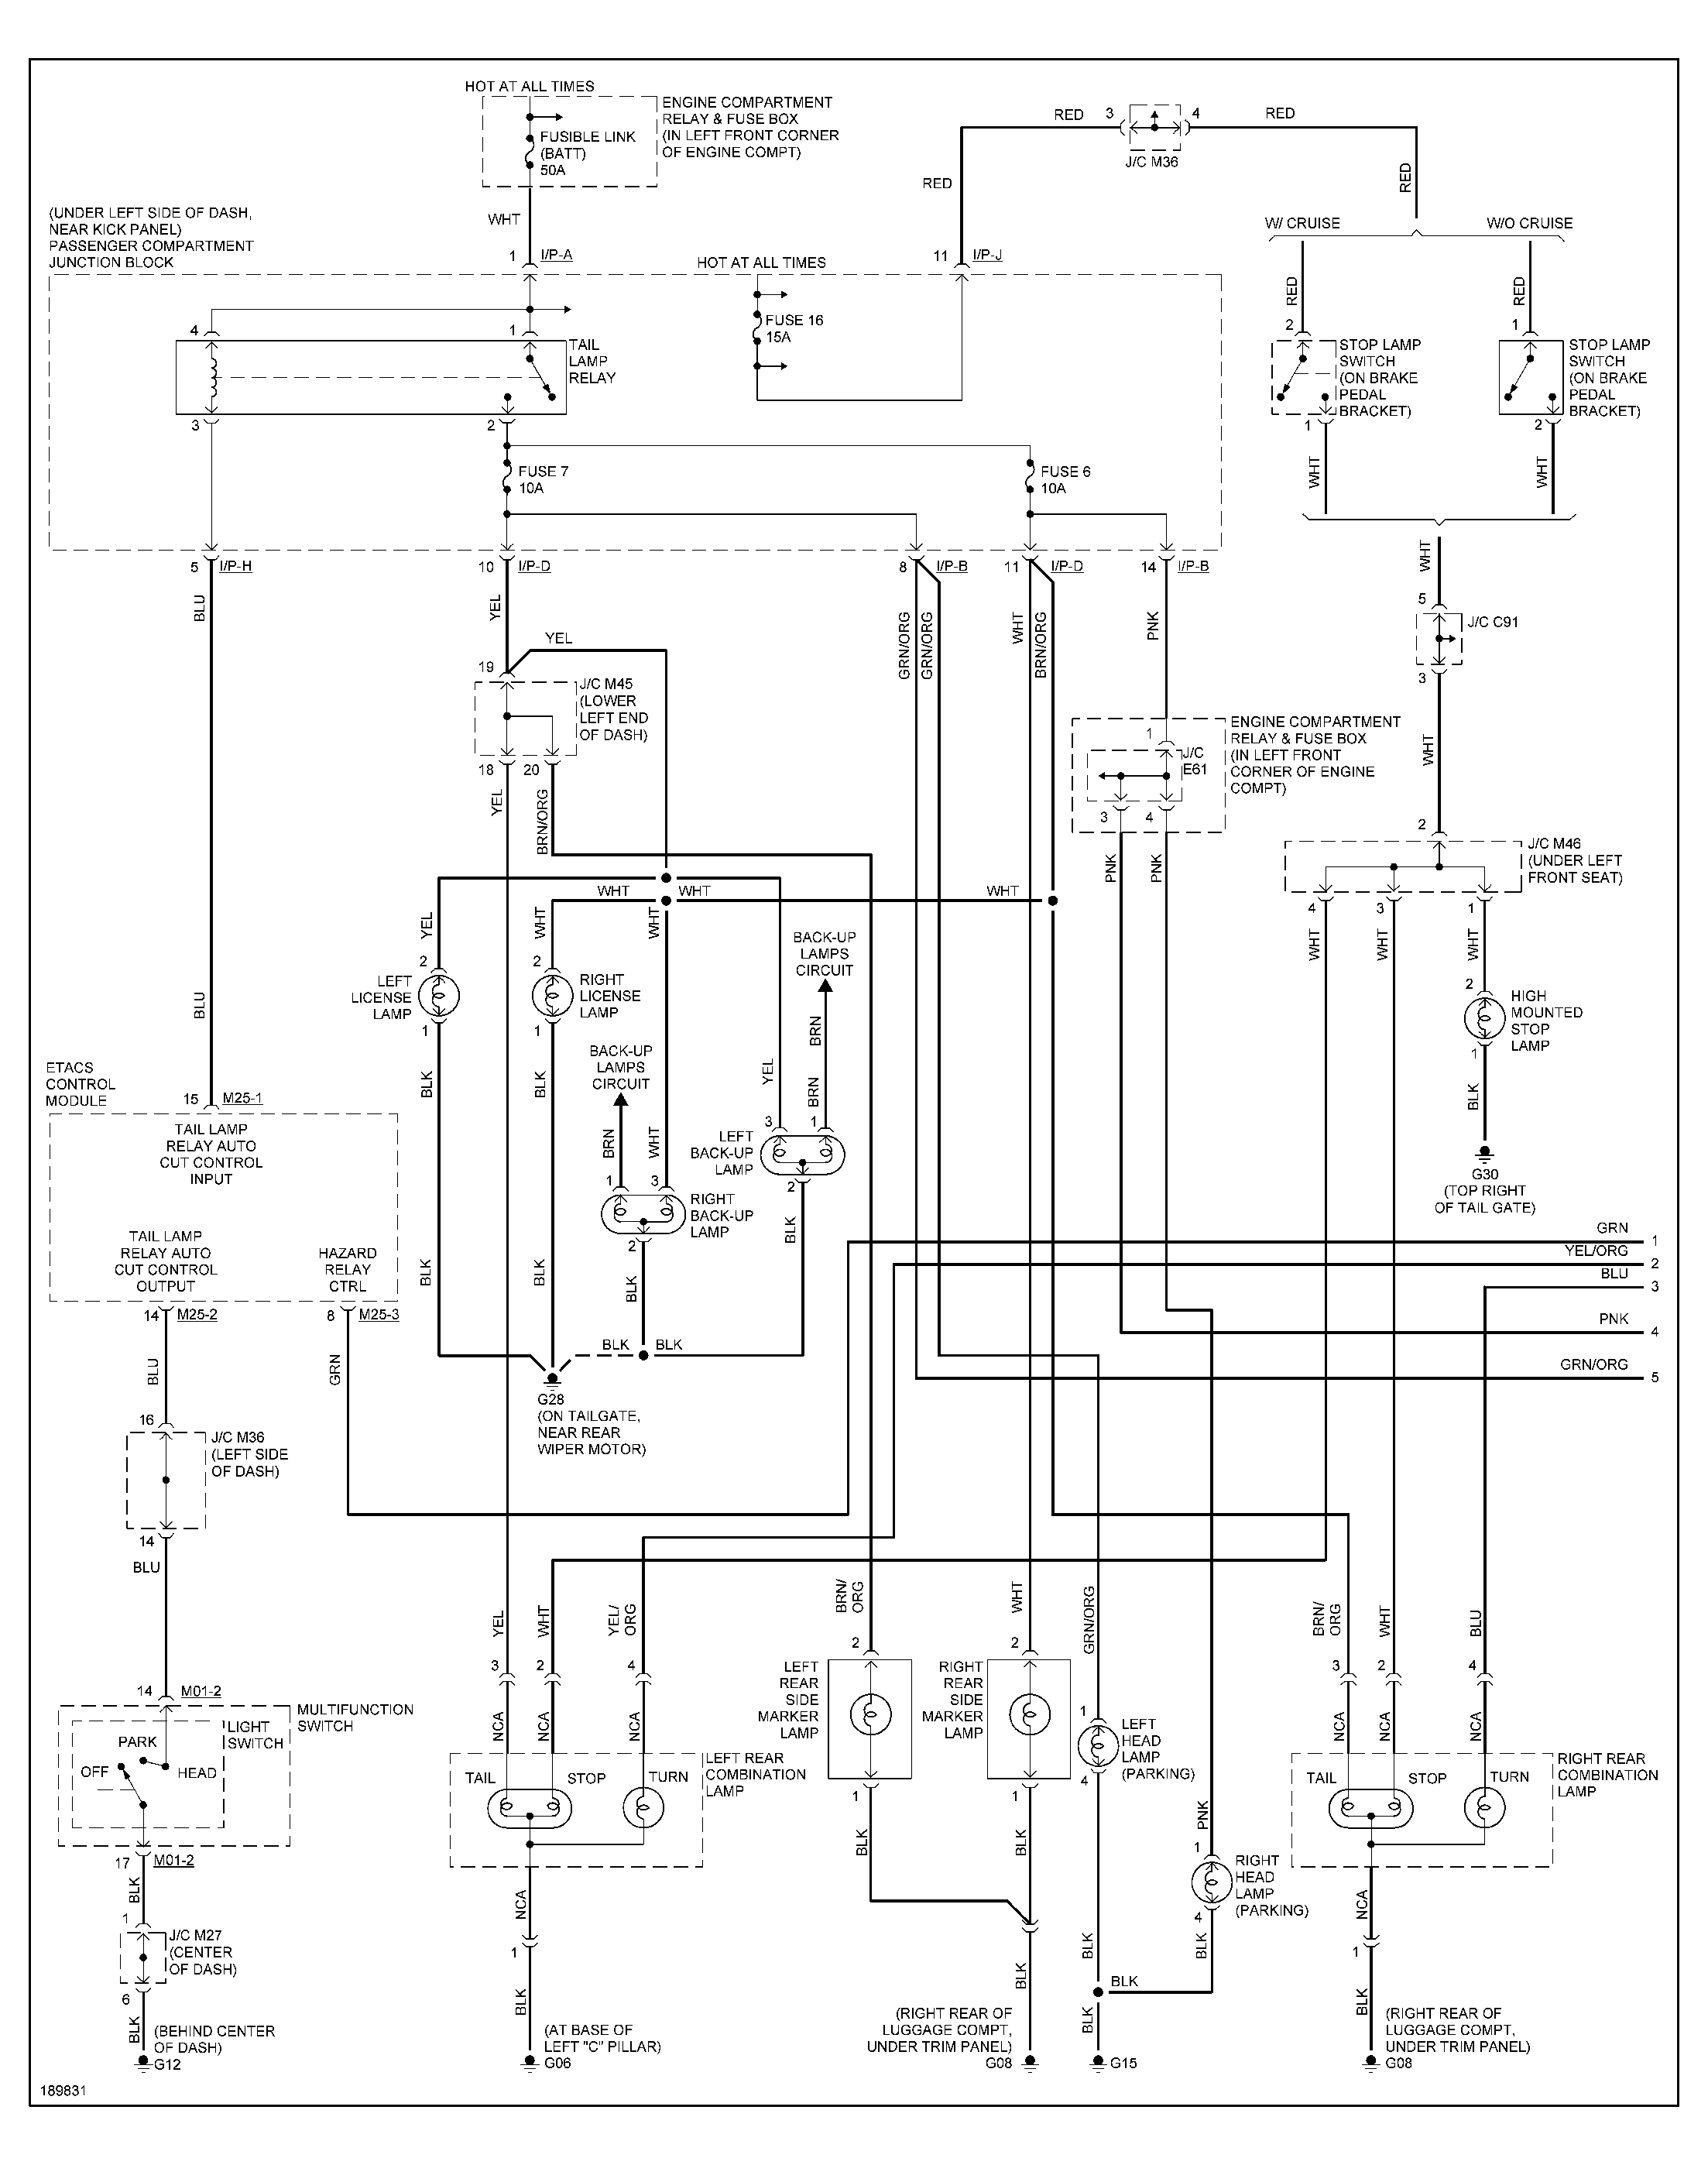 i need a diagram of the wiring harness from the head light switch toelantra wiring diagrams